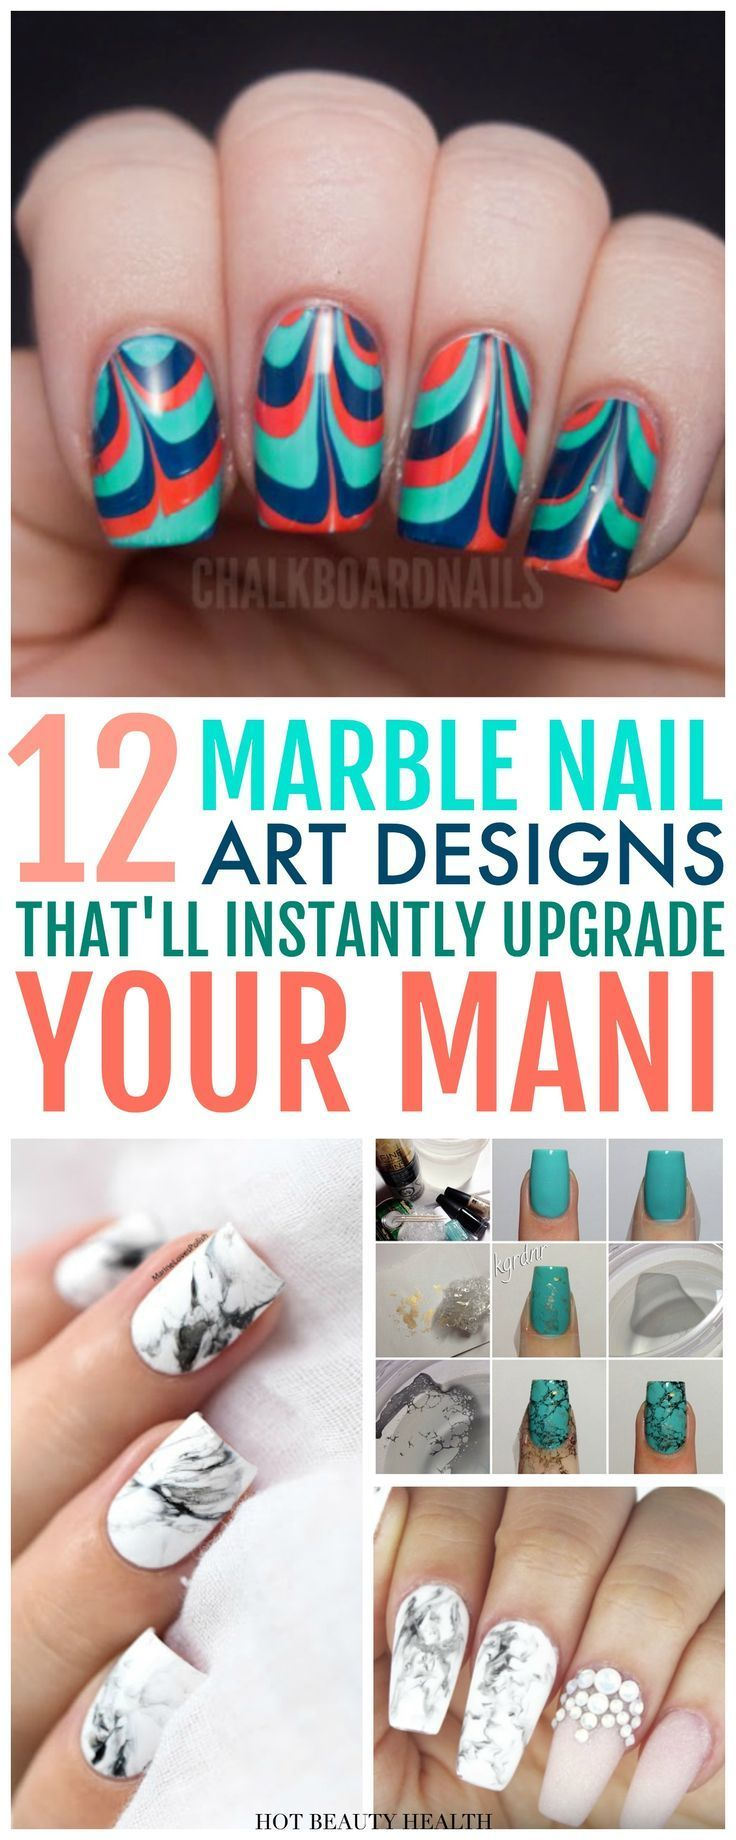 12 Marble Nail Art Designs That Will Make You Scream Omg Water